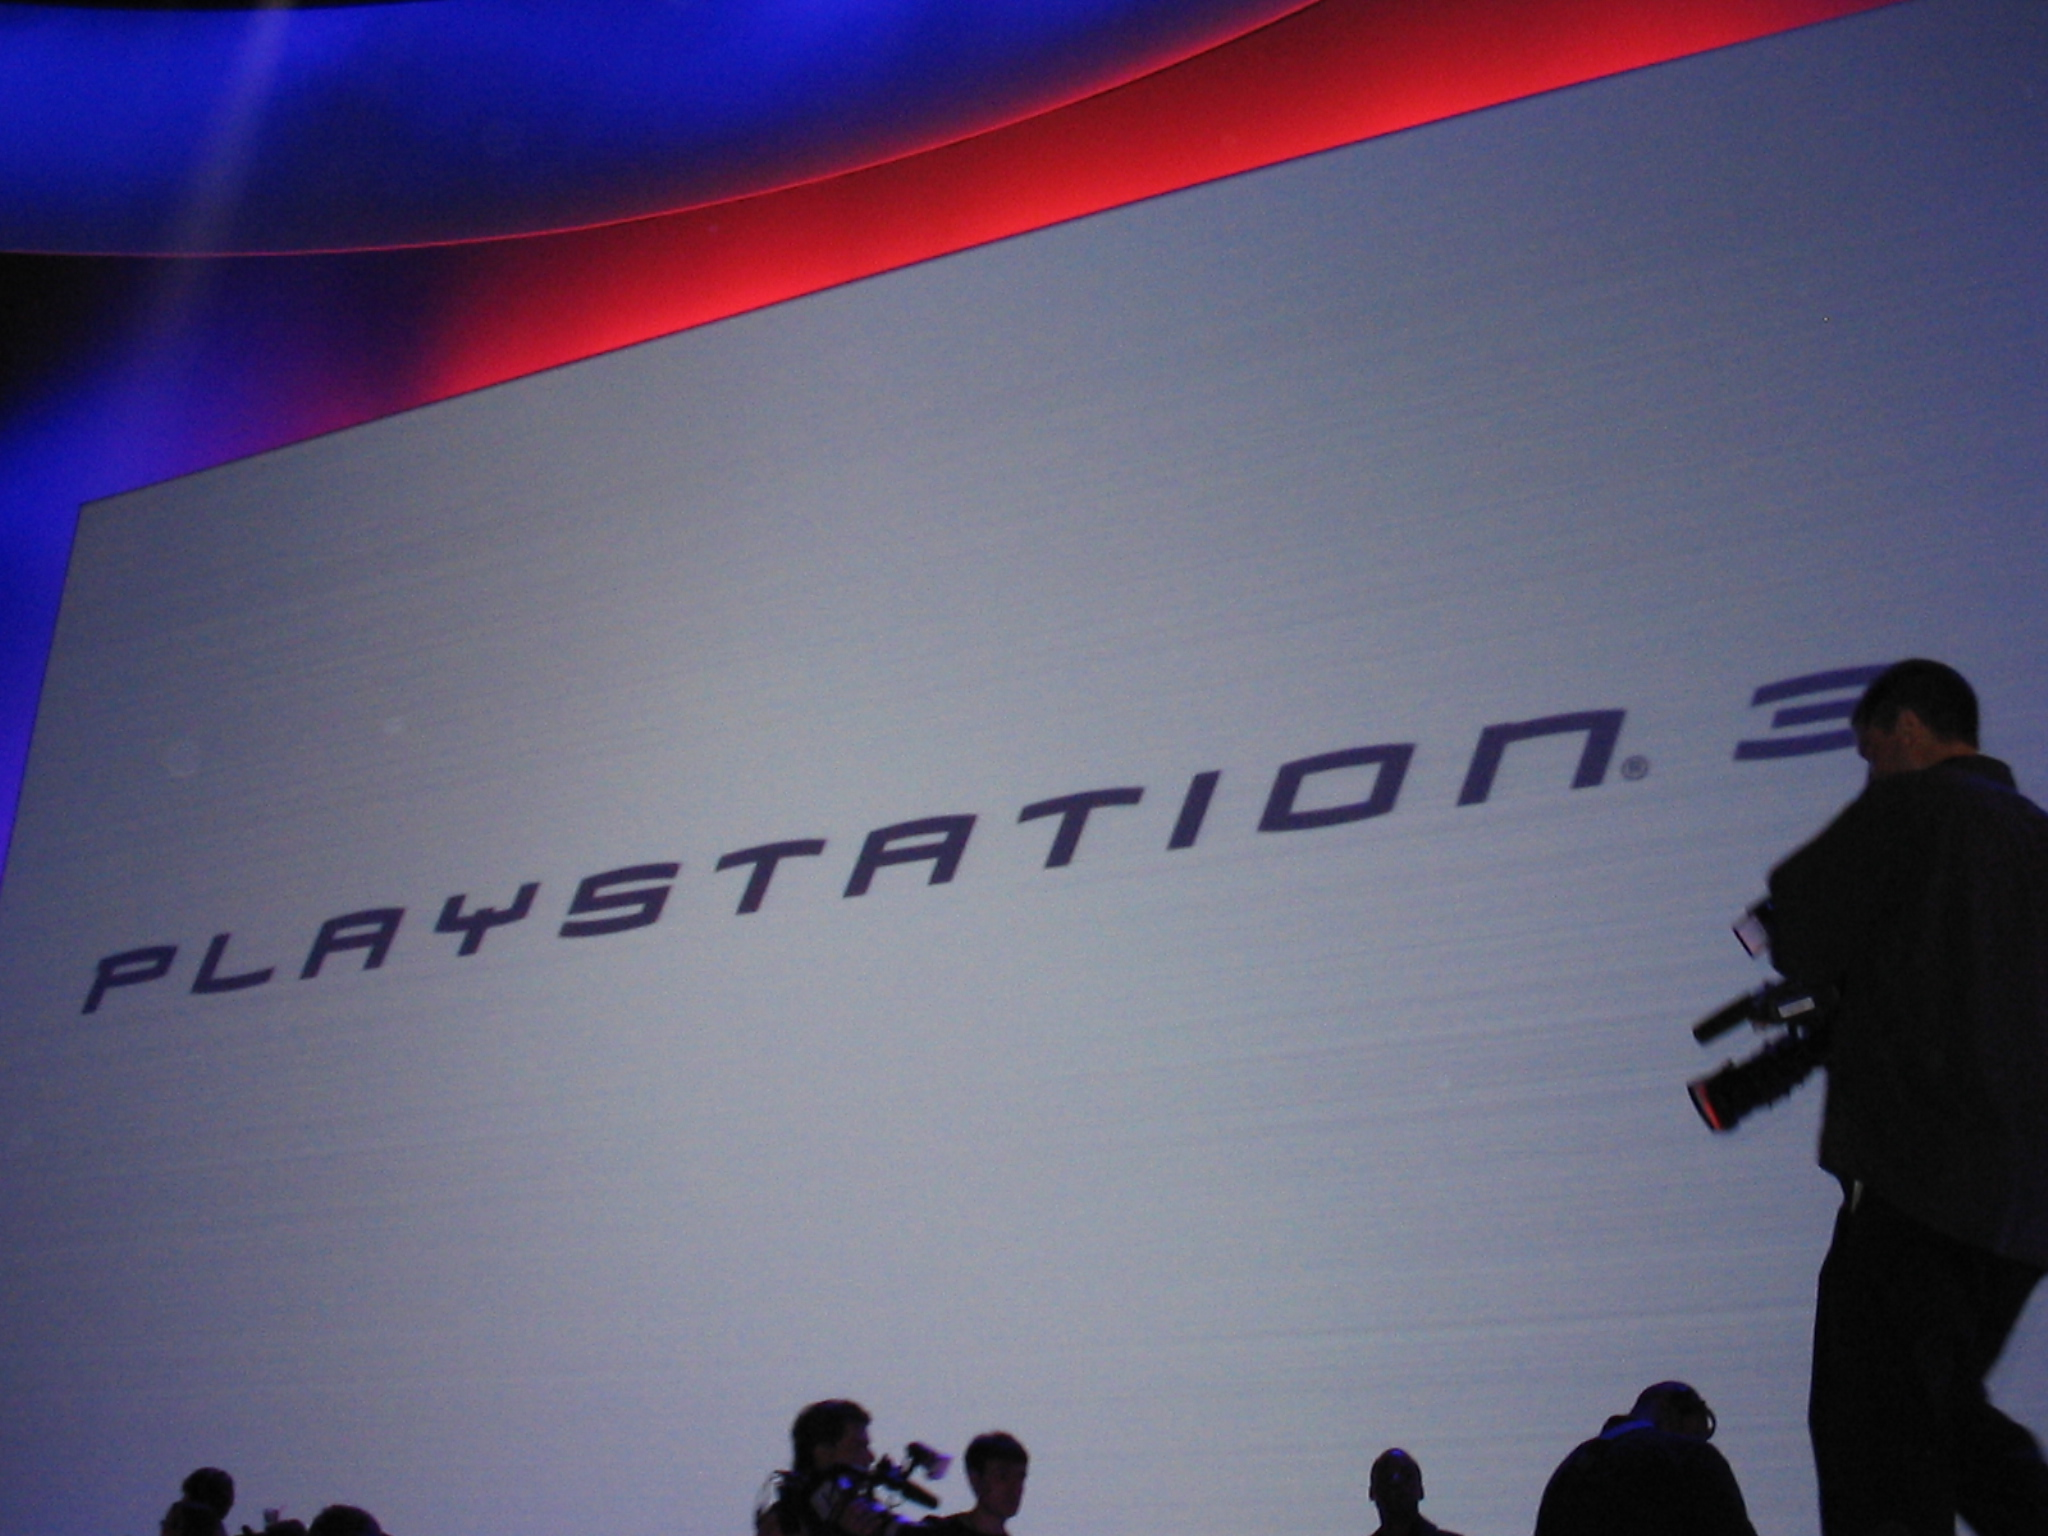 E3 2005: PS3 On Display E3 2005: PS3 On Display 908UTx4t